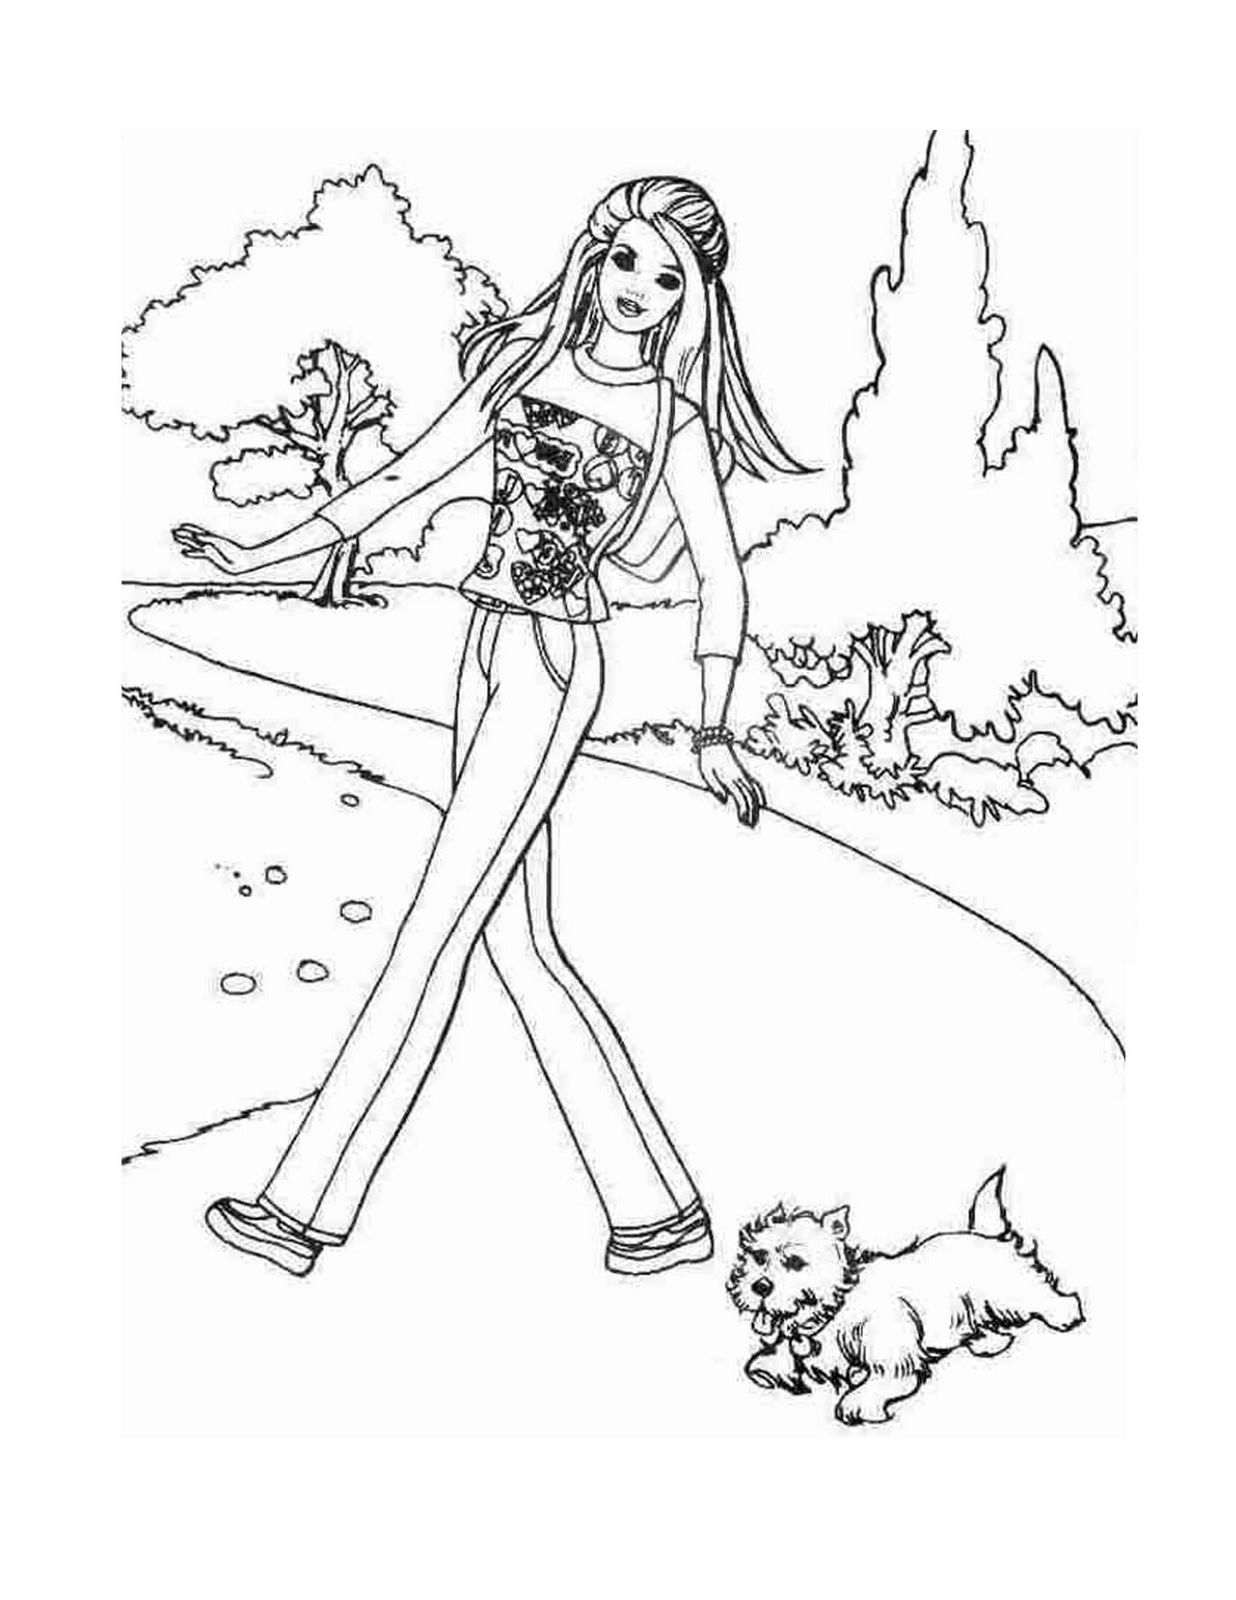 Princess Disney Coloring Pages Barbie Walking Barbie Coloring Pages Barbie Coloring Disney Princess Coloring Pages